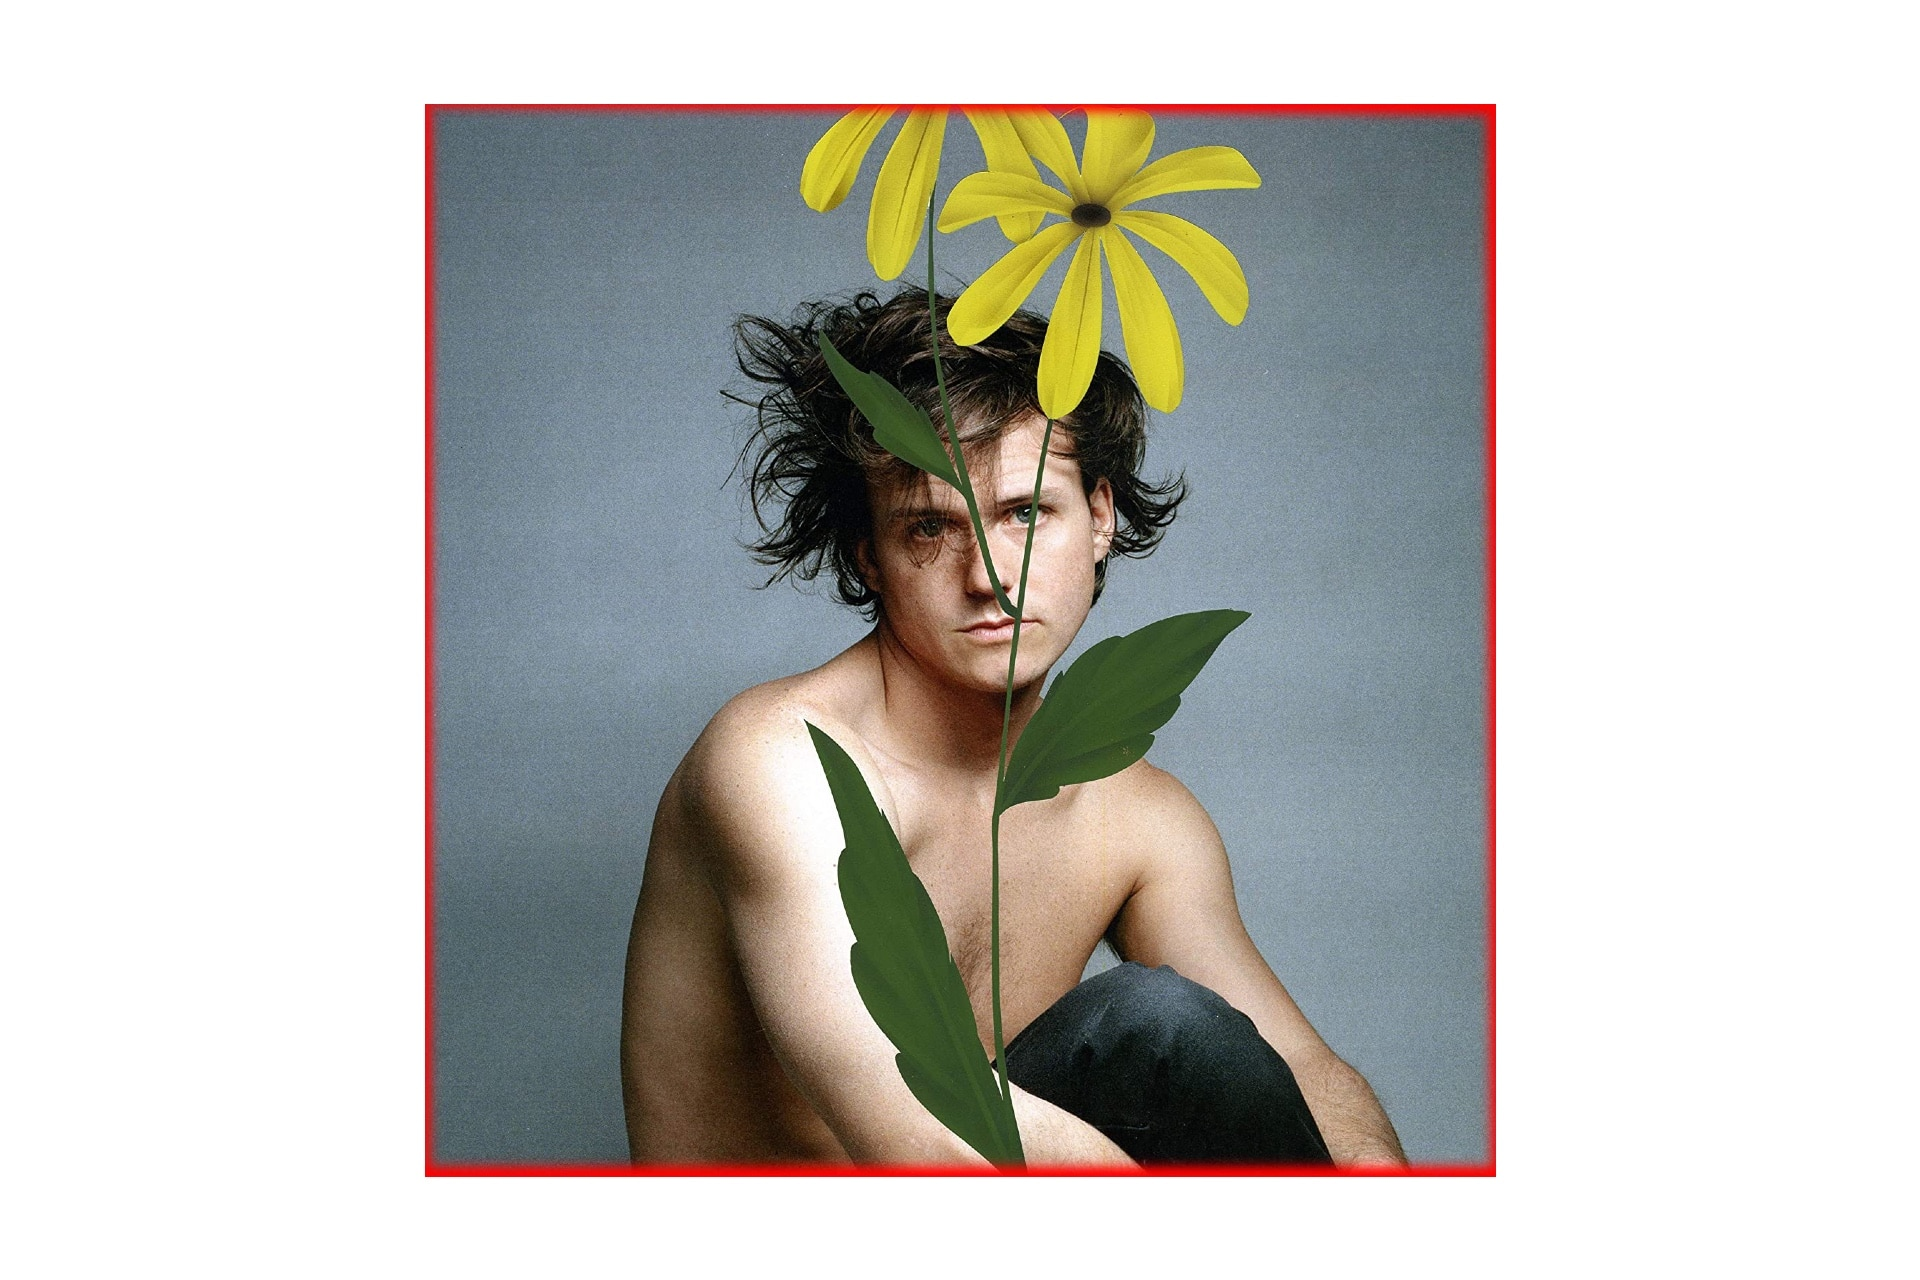 comedy album cover with photo of man and a sunflower